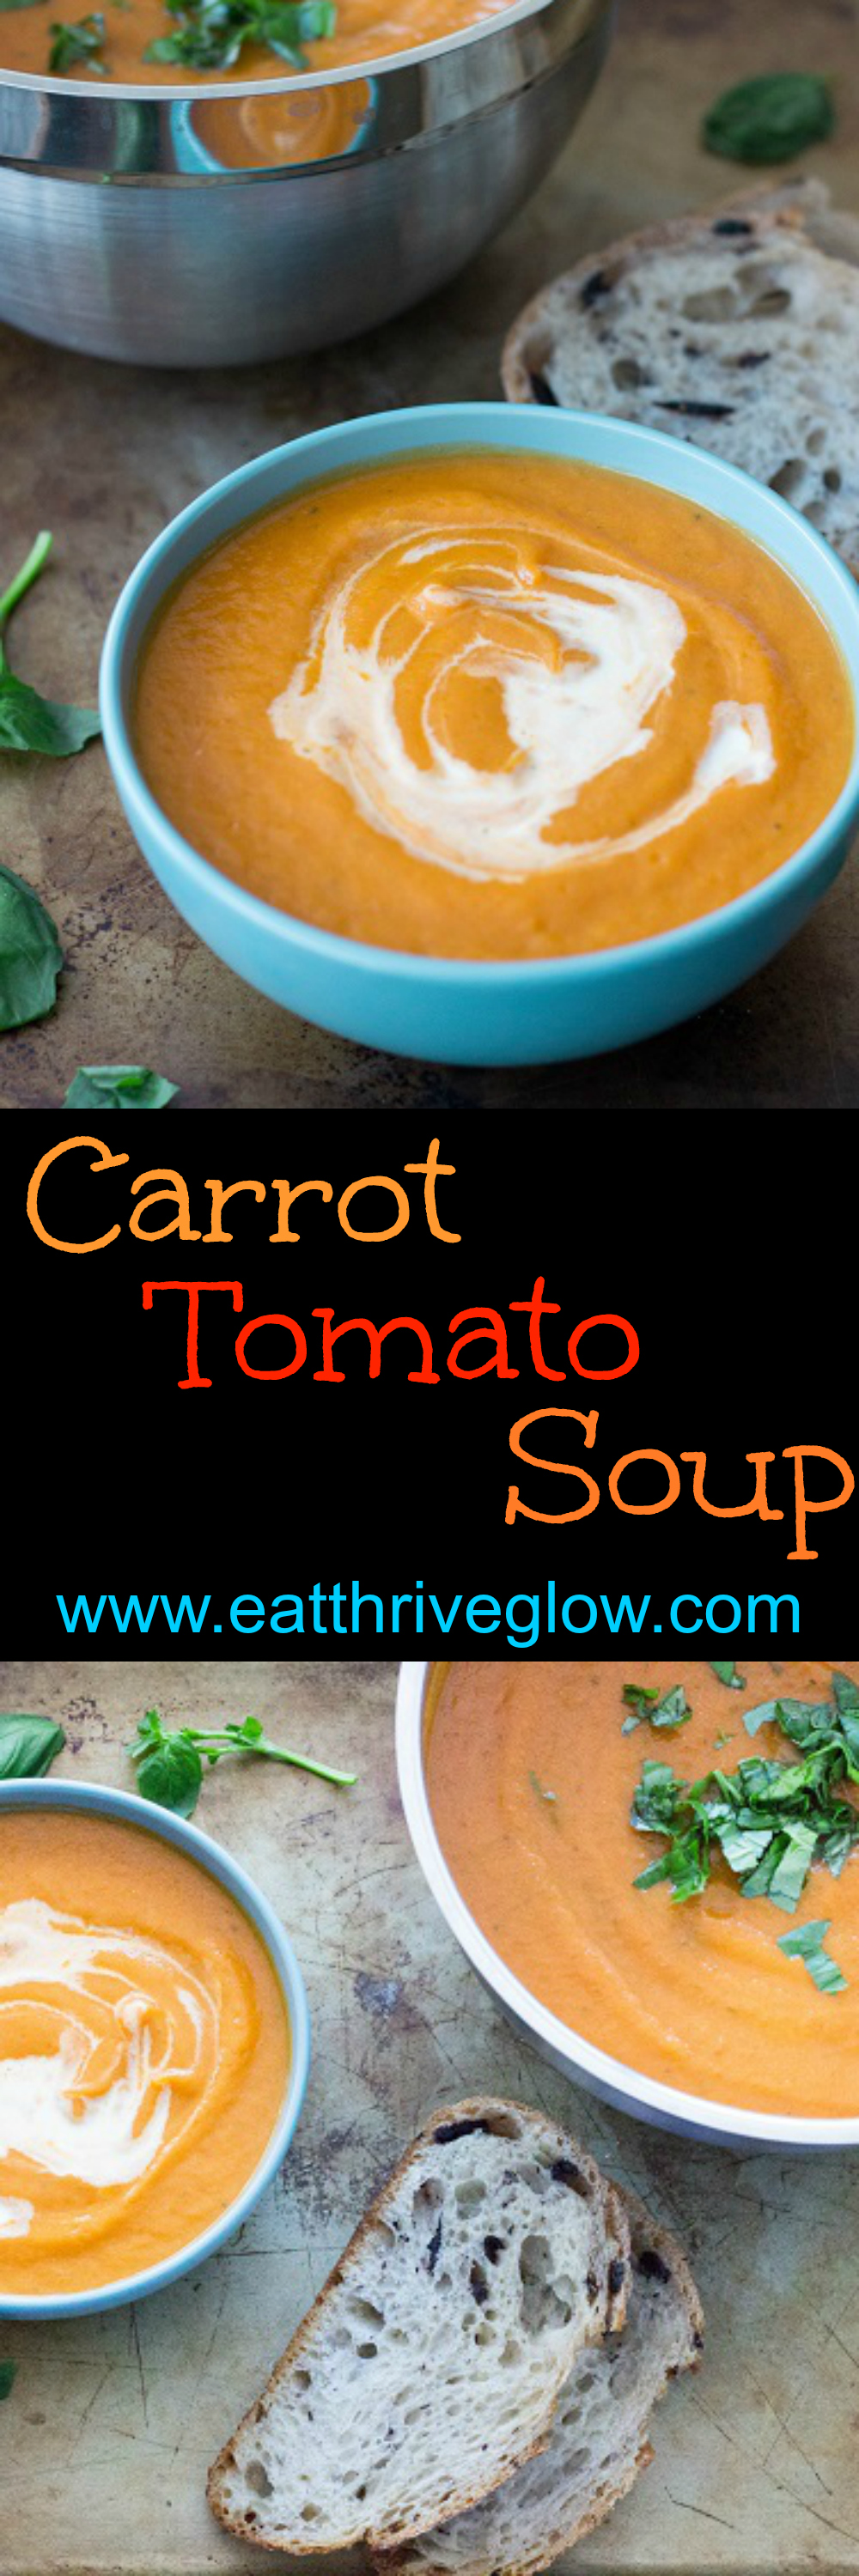 Carrot Tomato Soup - Eat Thrive Glow